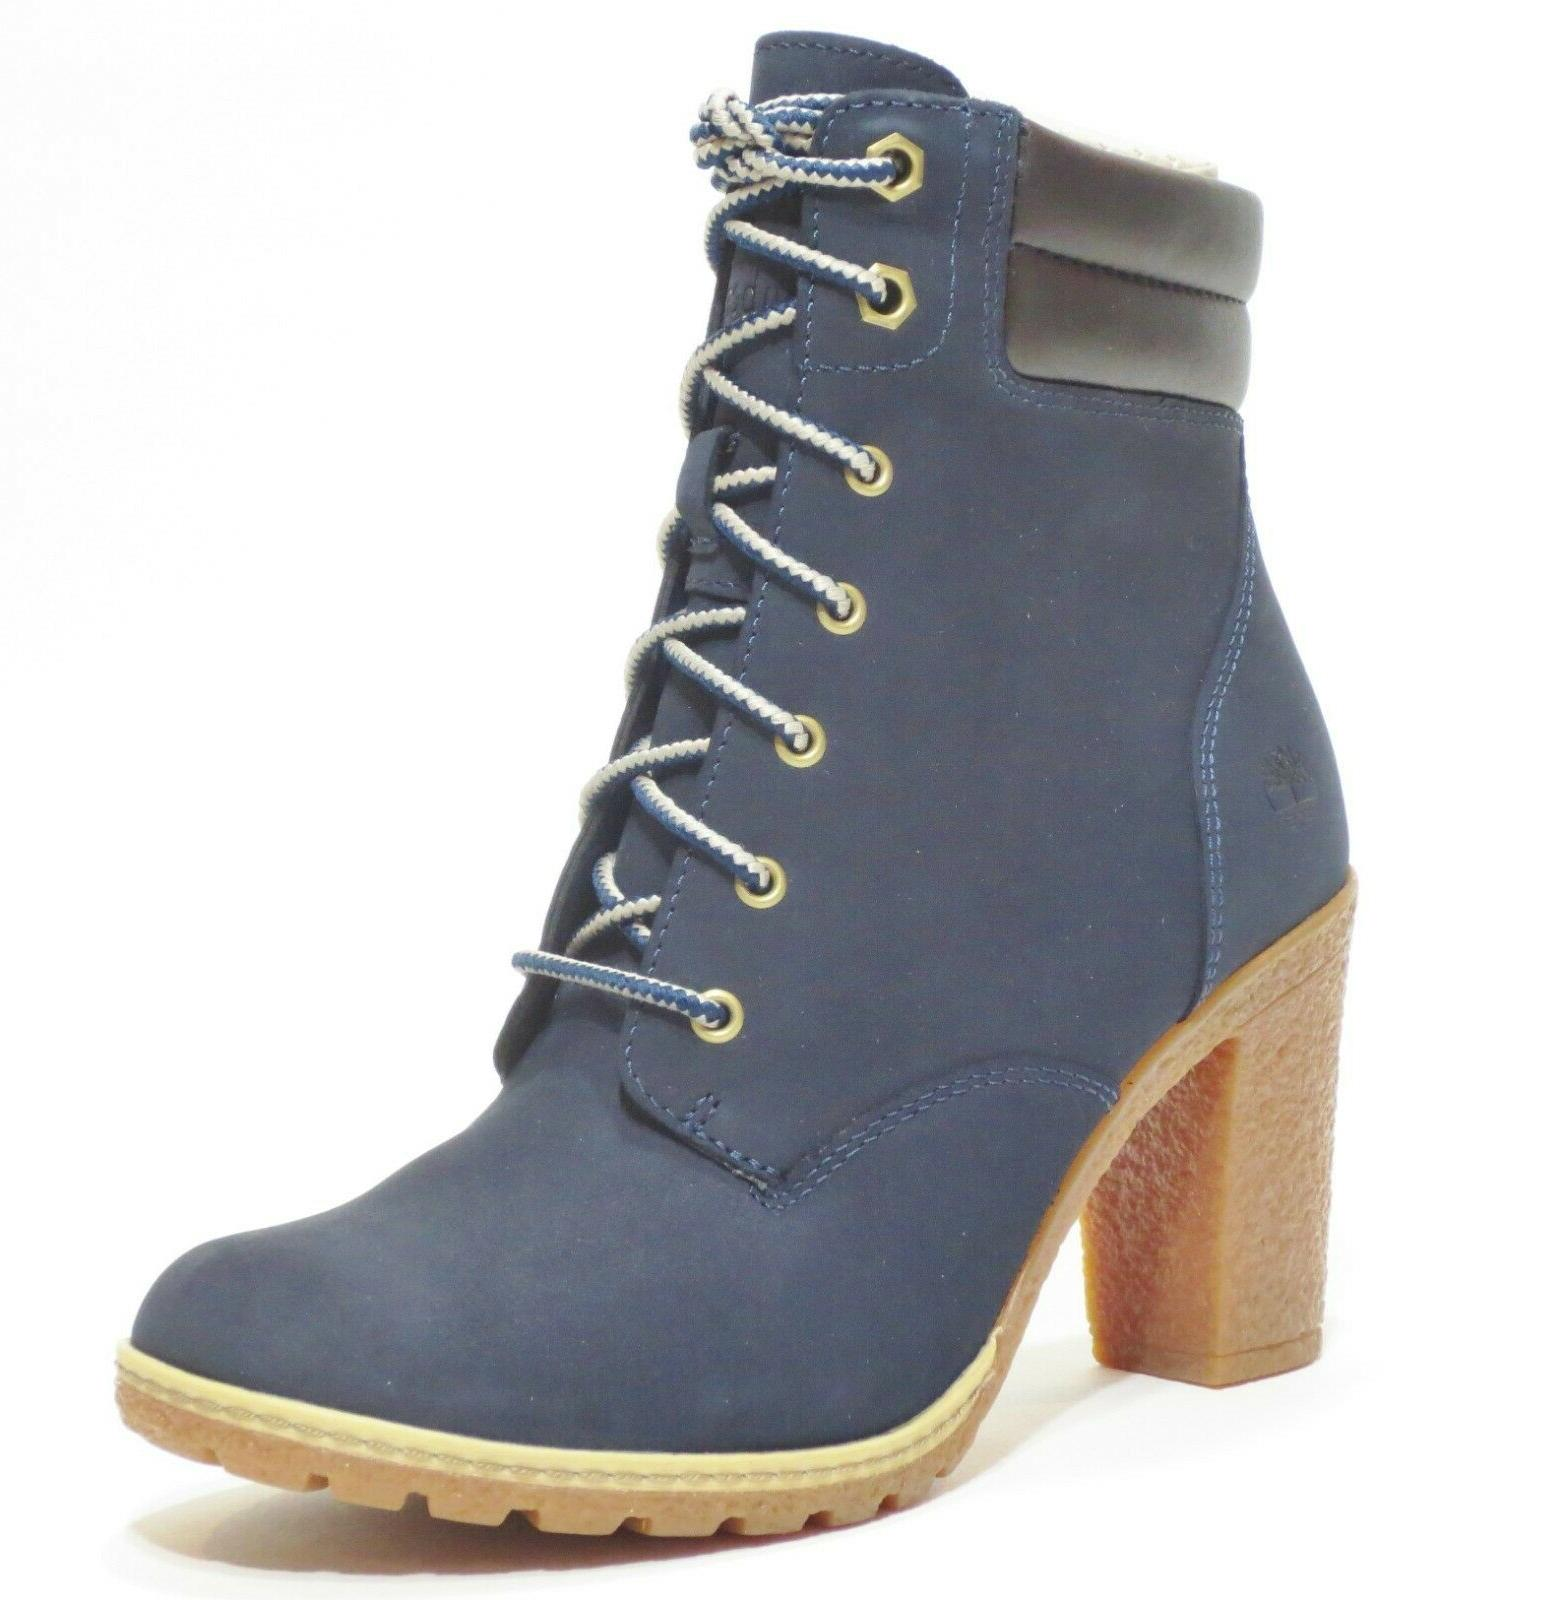 Timberland Women's Tillston High Heel Navy Blue Leather Boot